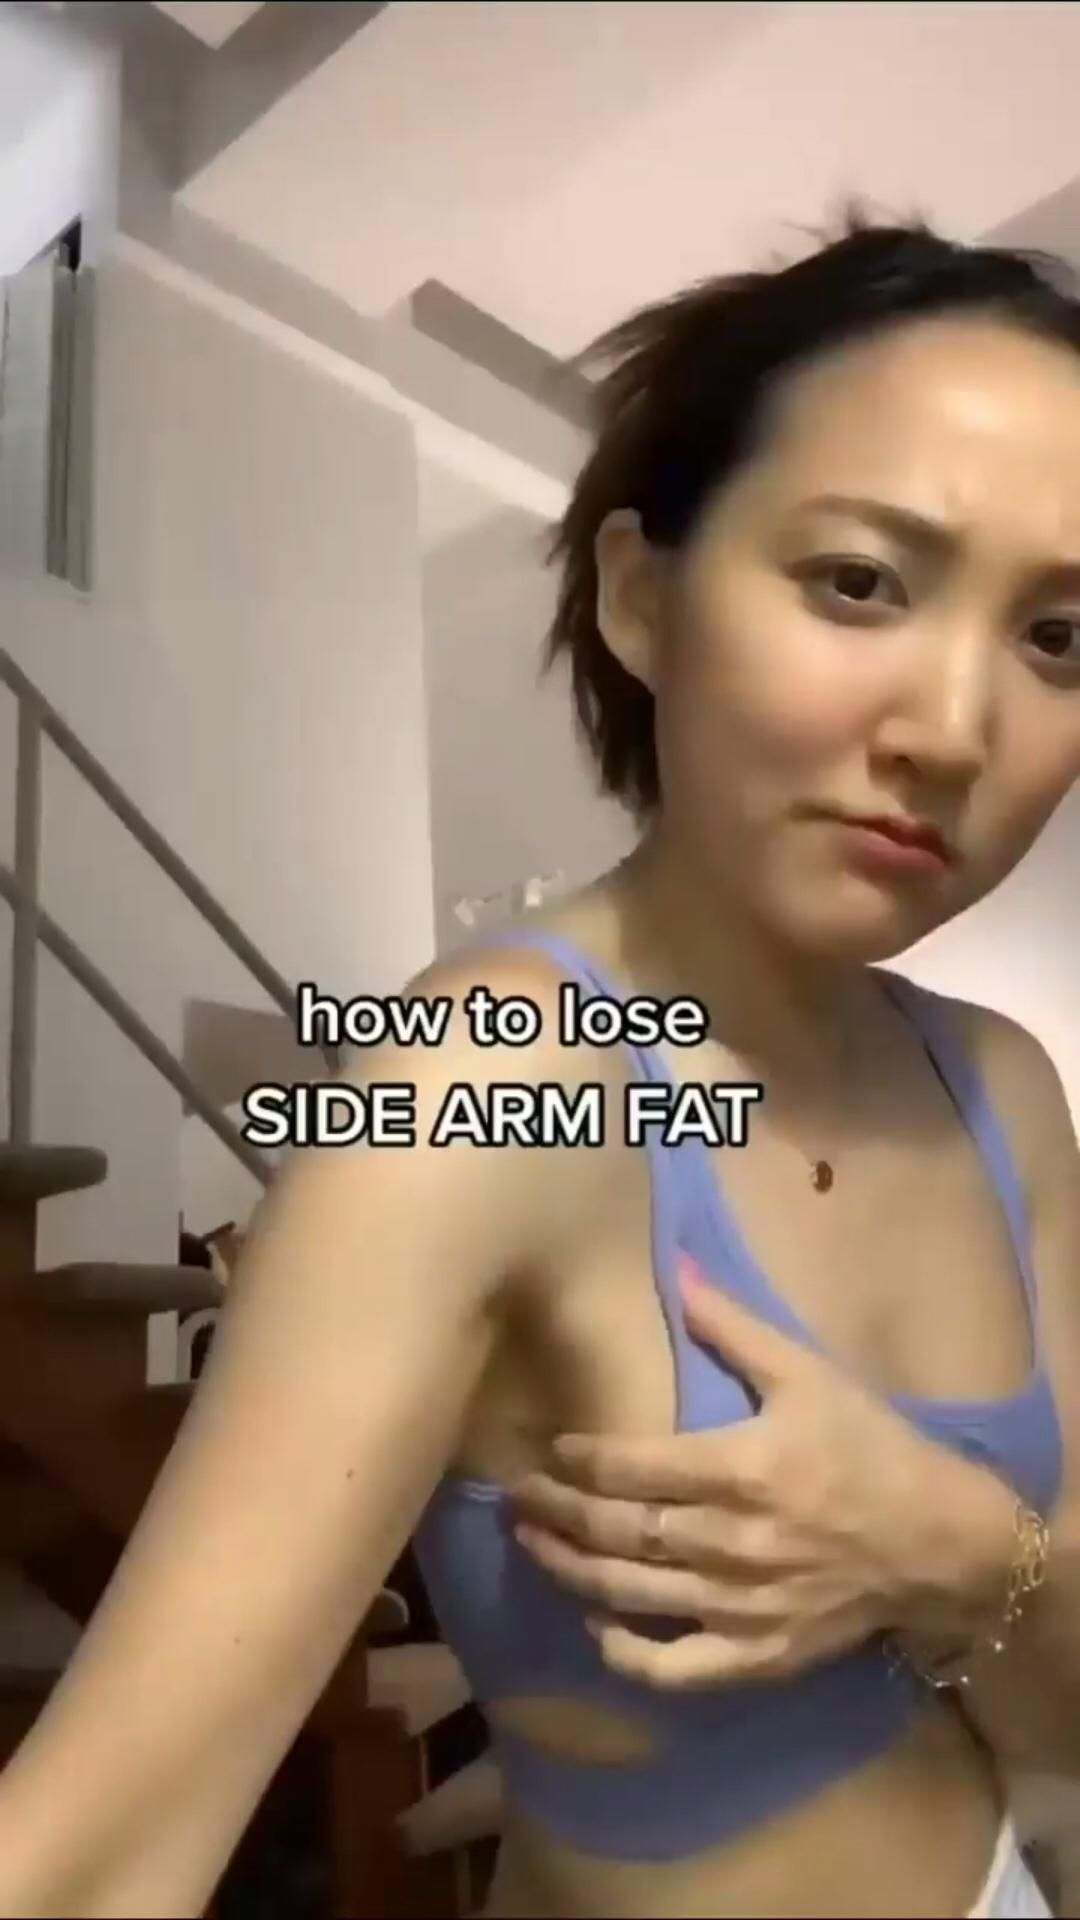 Loose your side arm weight by watching our video!😍